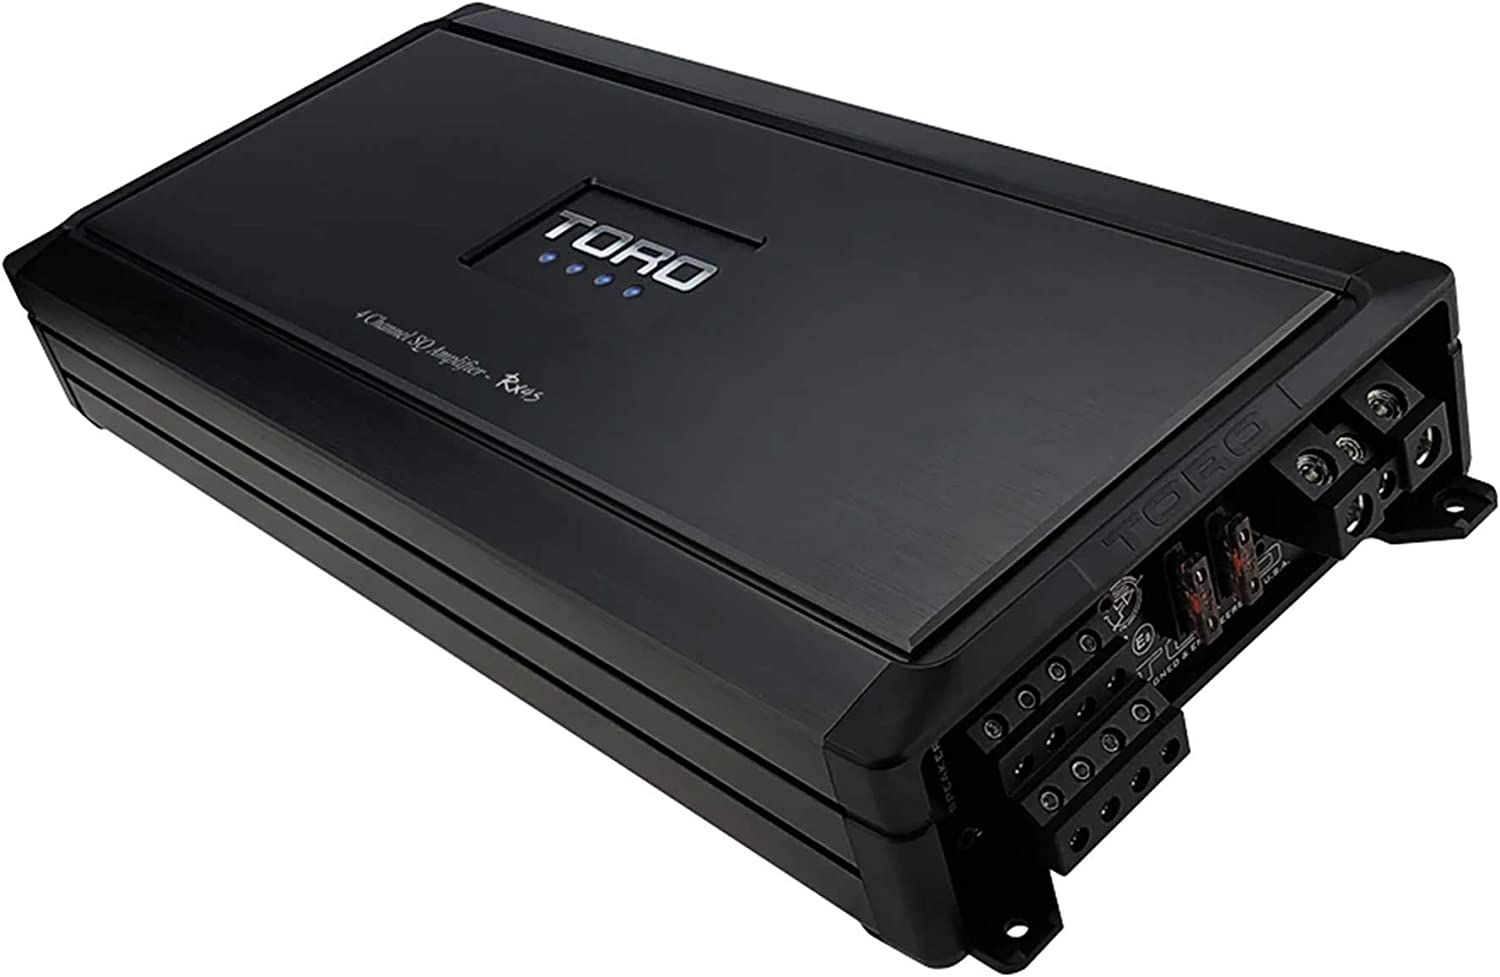 Auto Turn-On Sound Quality Class D Design 80 Watts x 4 RMS @ 4 Ohm // 130w x 4 RMS @ 2 Ohm Micro Sized Multi-Channel Car Amplifier Full Range Speaker or Subwoofer Amplifier TORO TECH MRx4